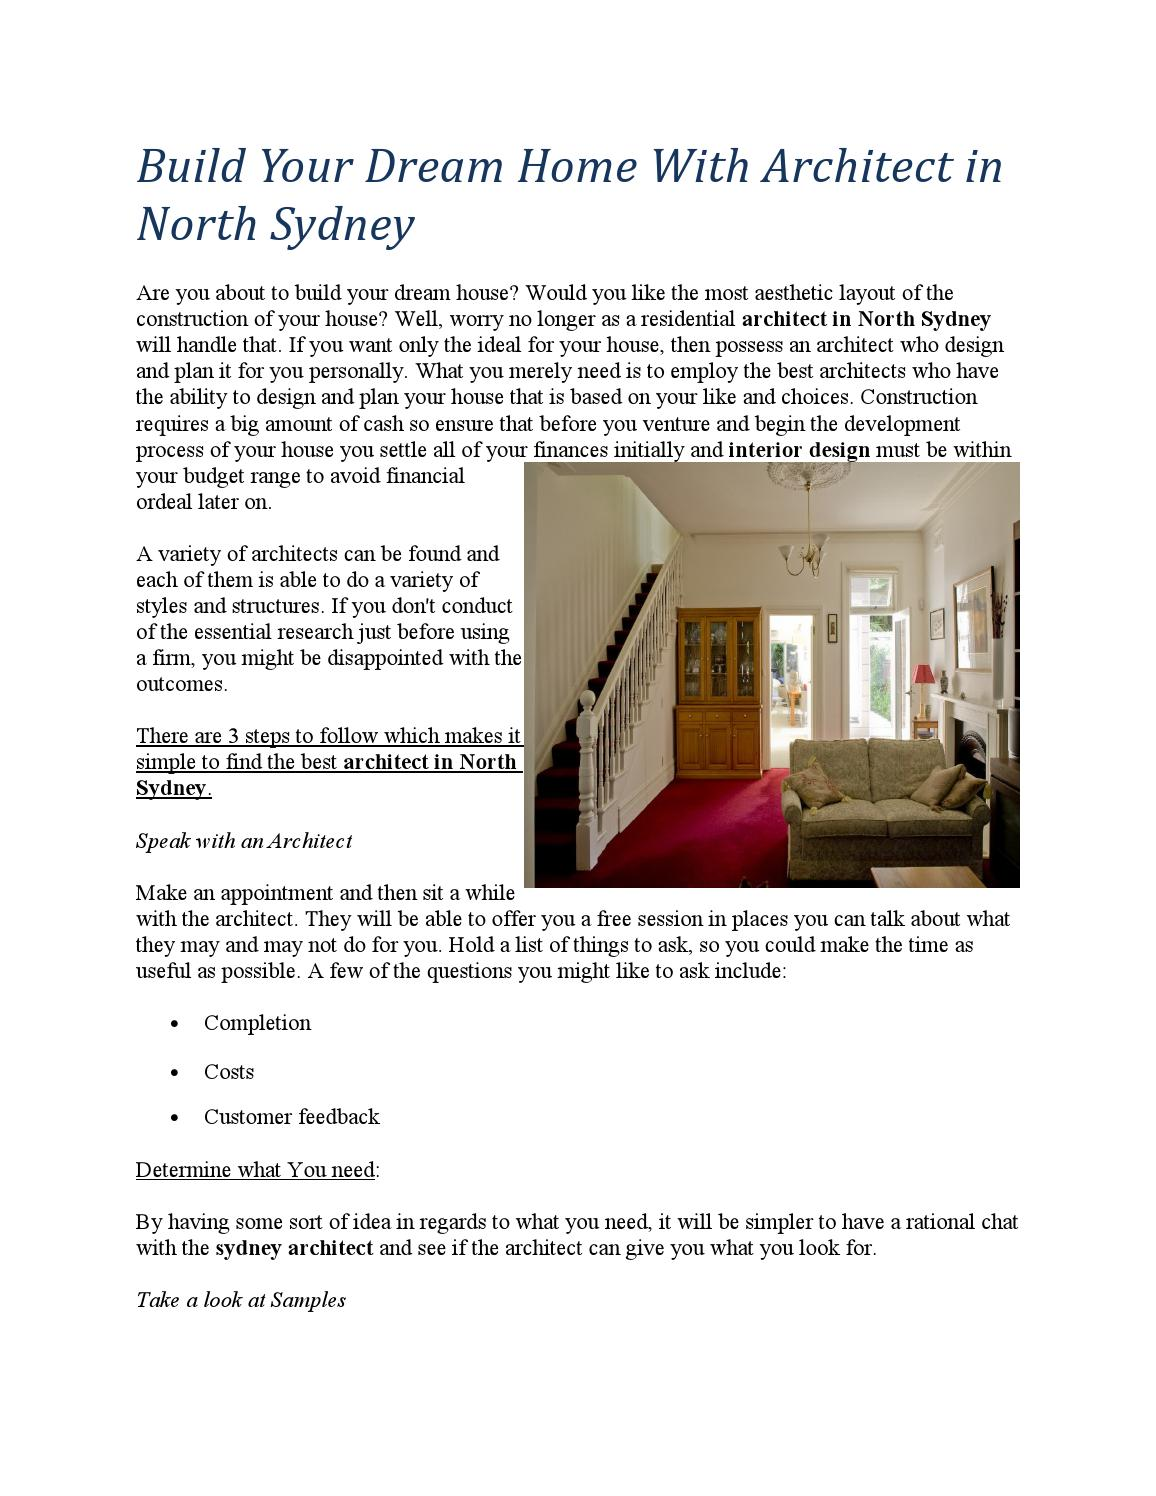 Build Your Dream Home With Architect in North Sydney by ...